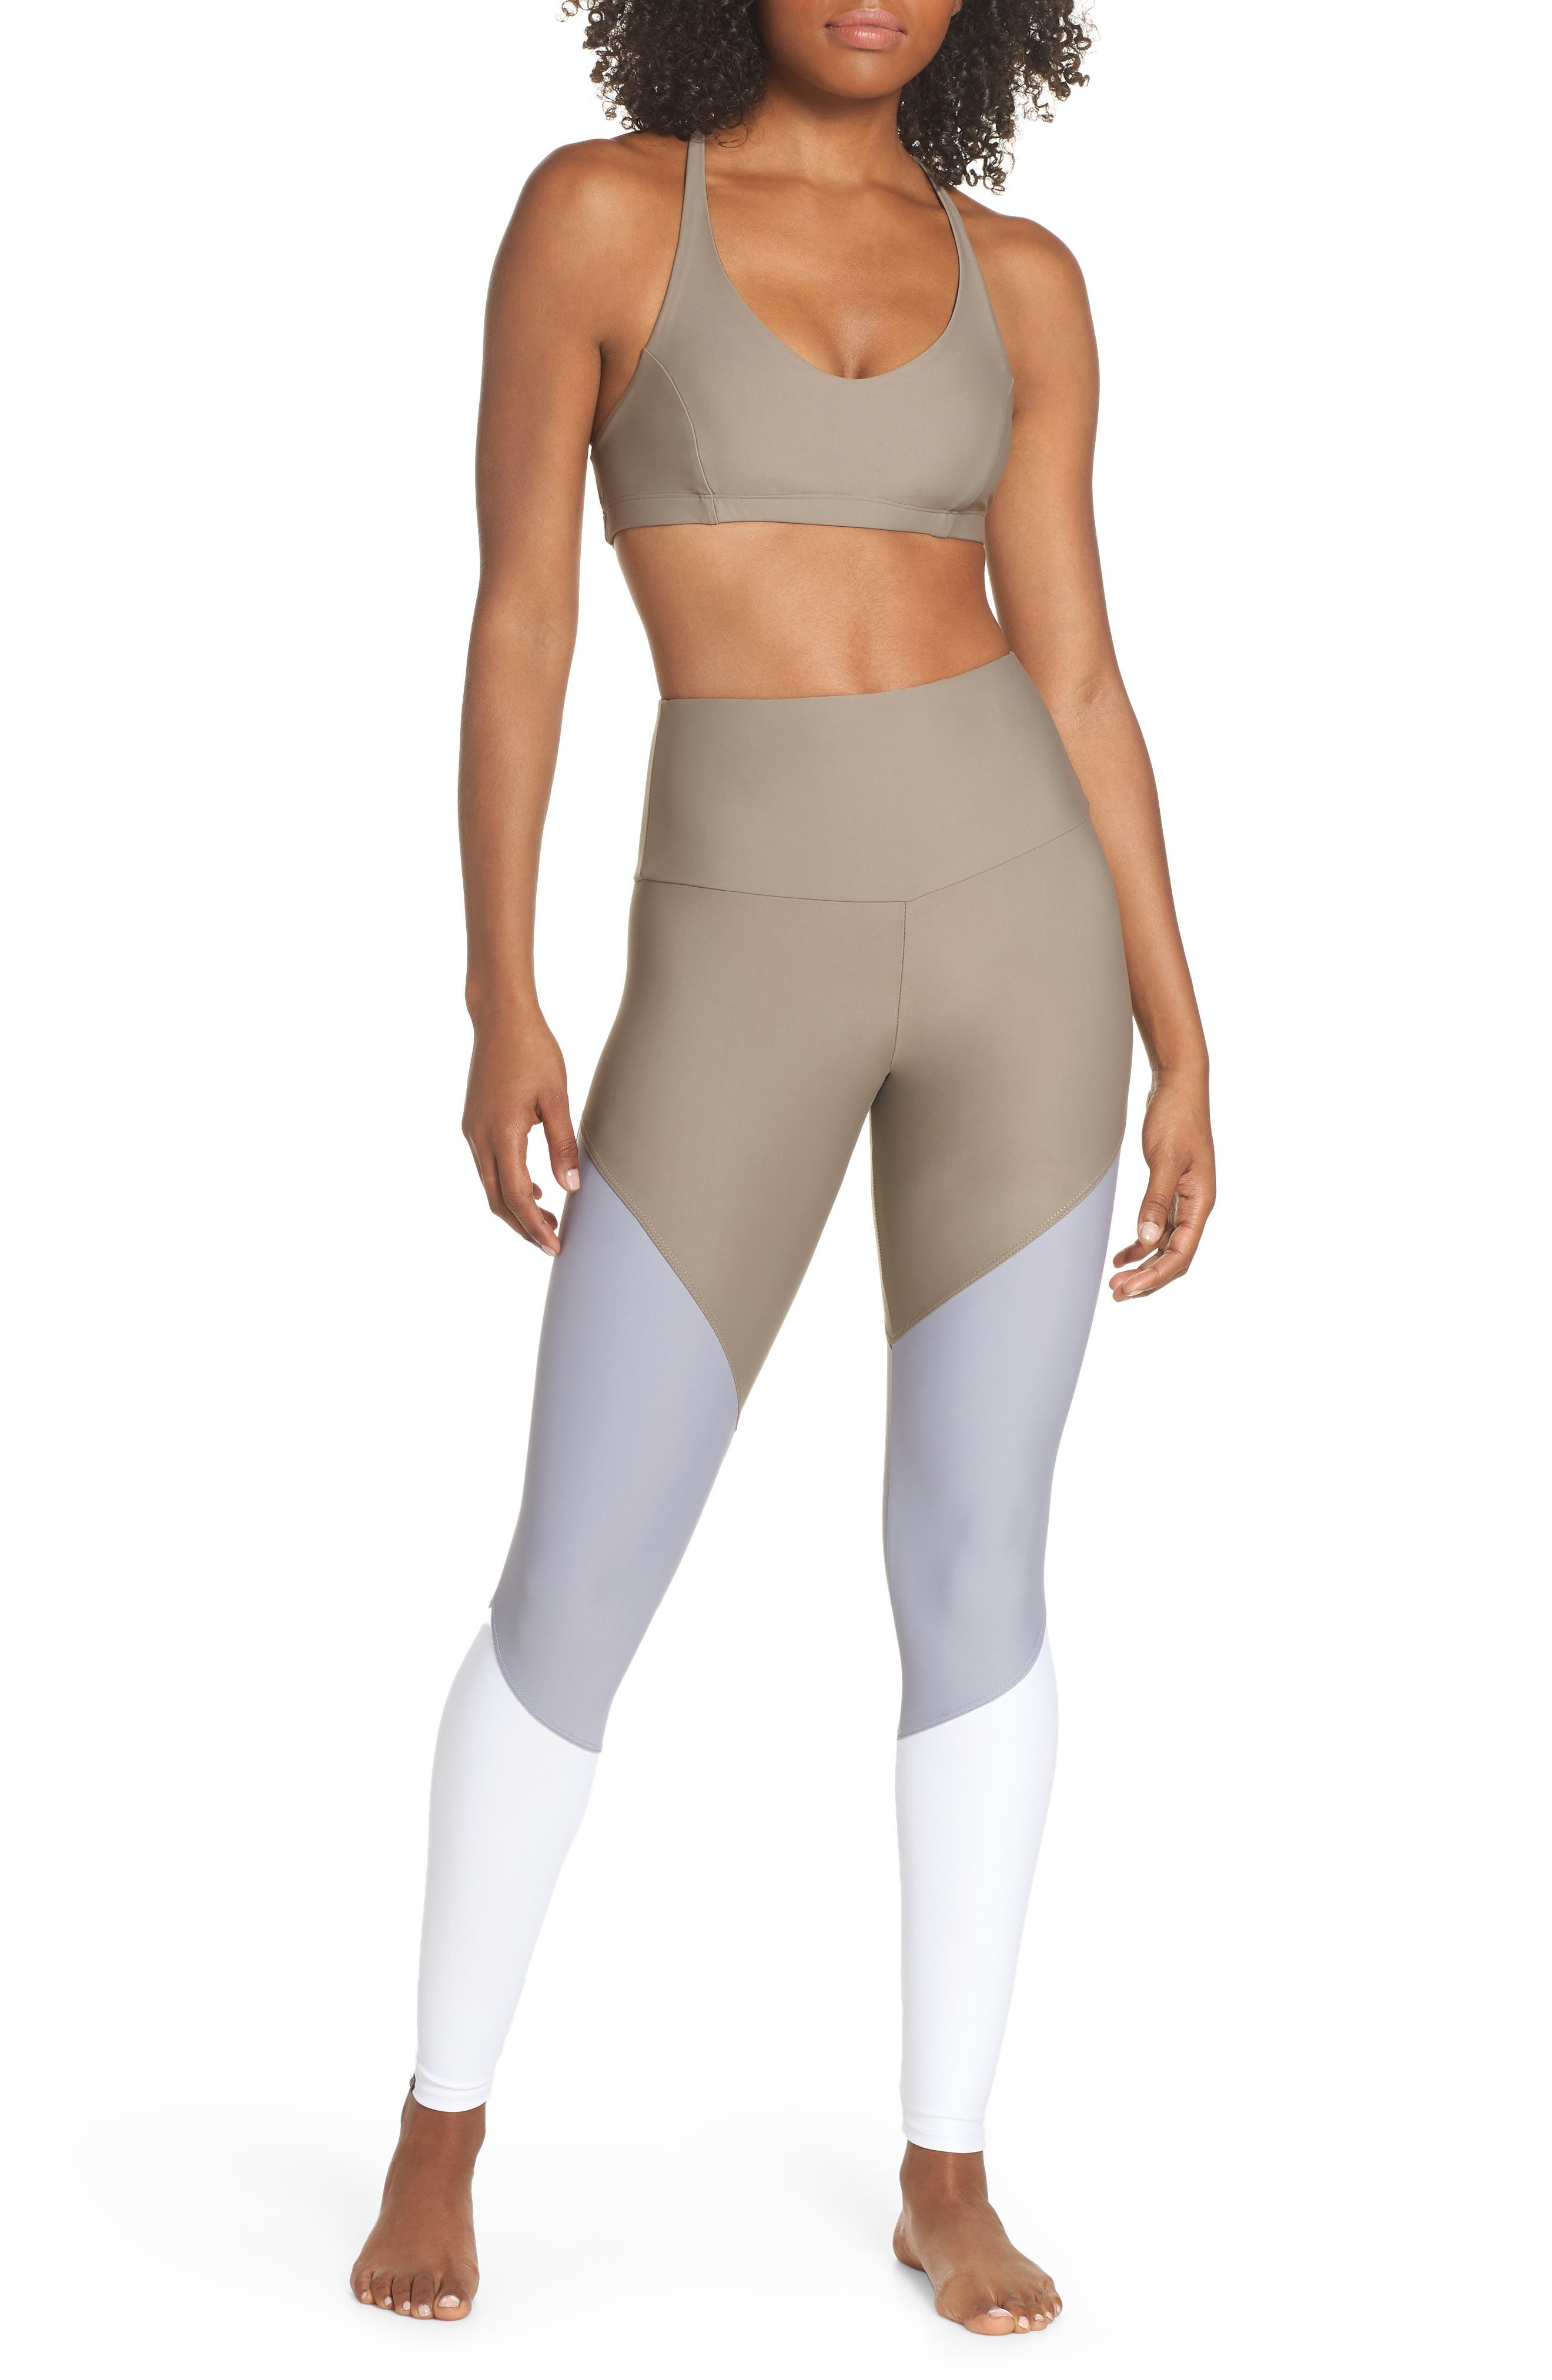 Pyramid Sports Bra,                             Alternate thumbnail 8, color,                             DUST